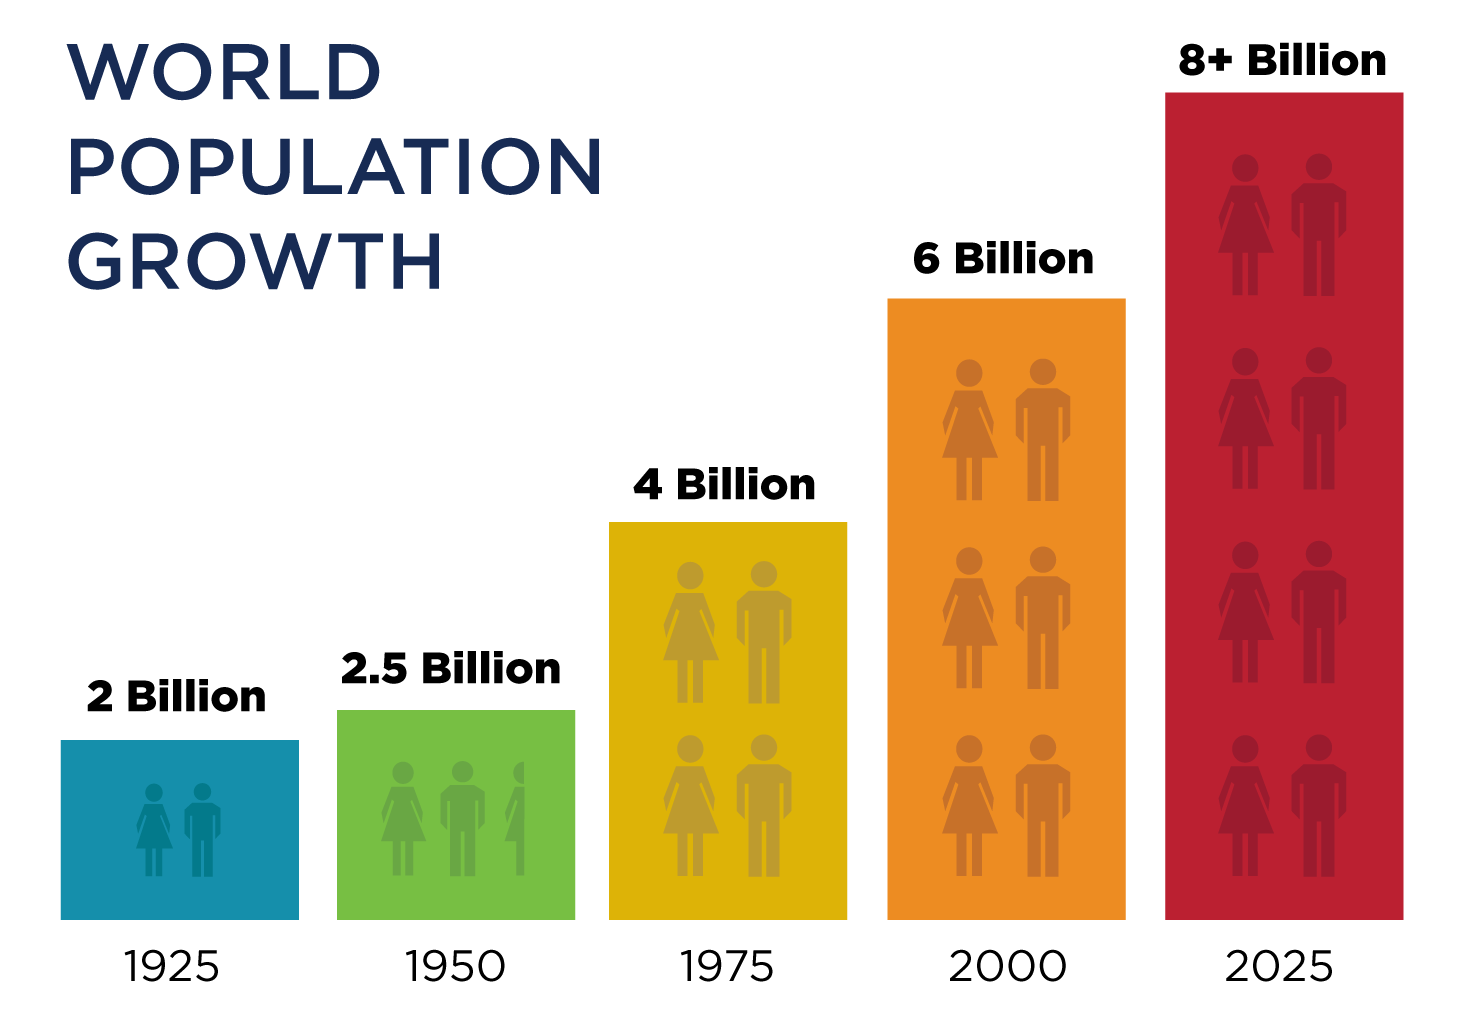 World population is projected to be 8+ billion in 2025.